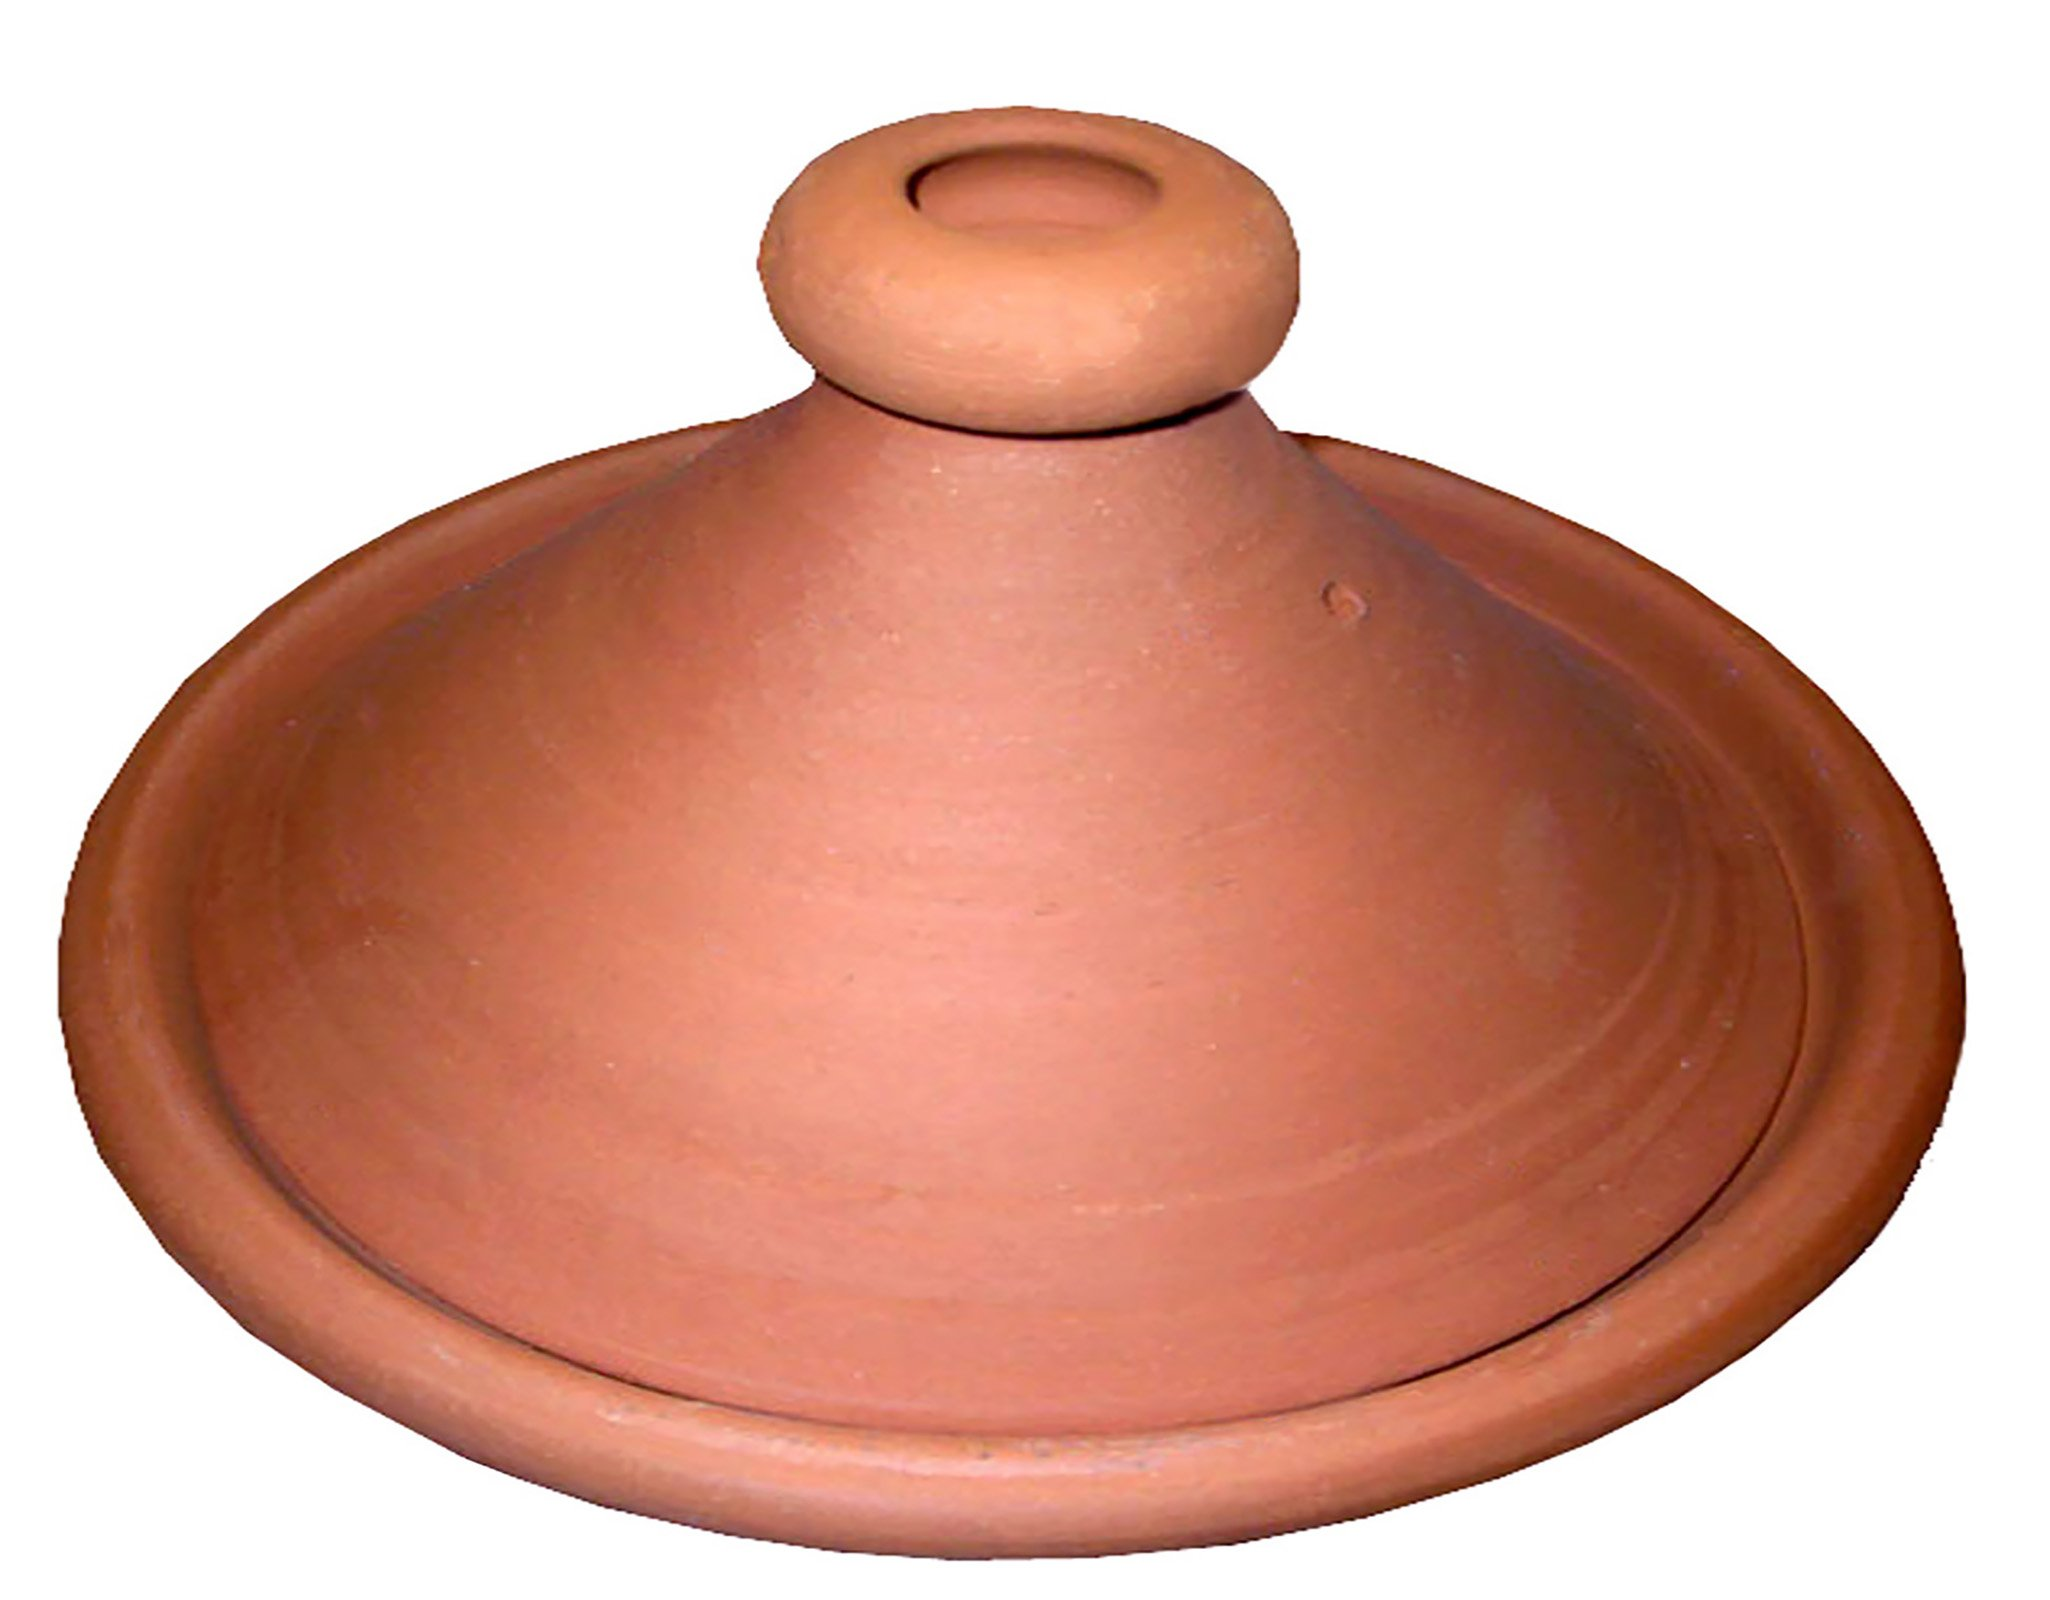 Moroccan Lead Free Cooking Tagine Non Glazed X-Large 13 Inches in Diameter Authentic Food